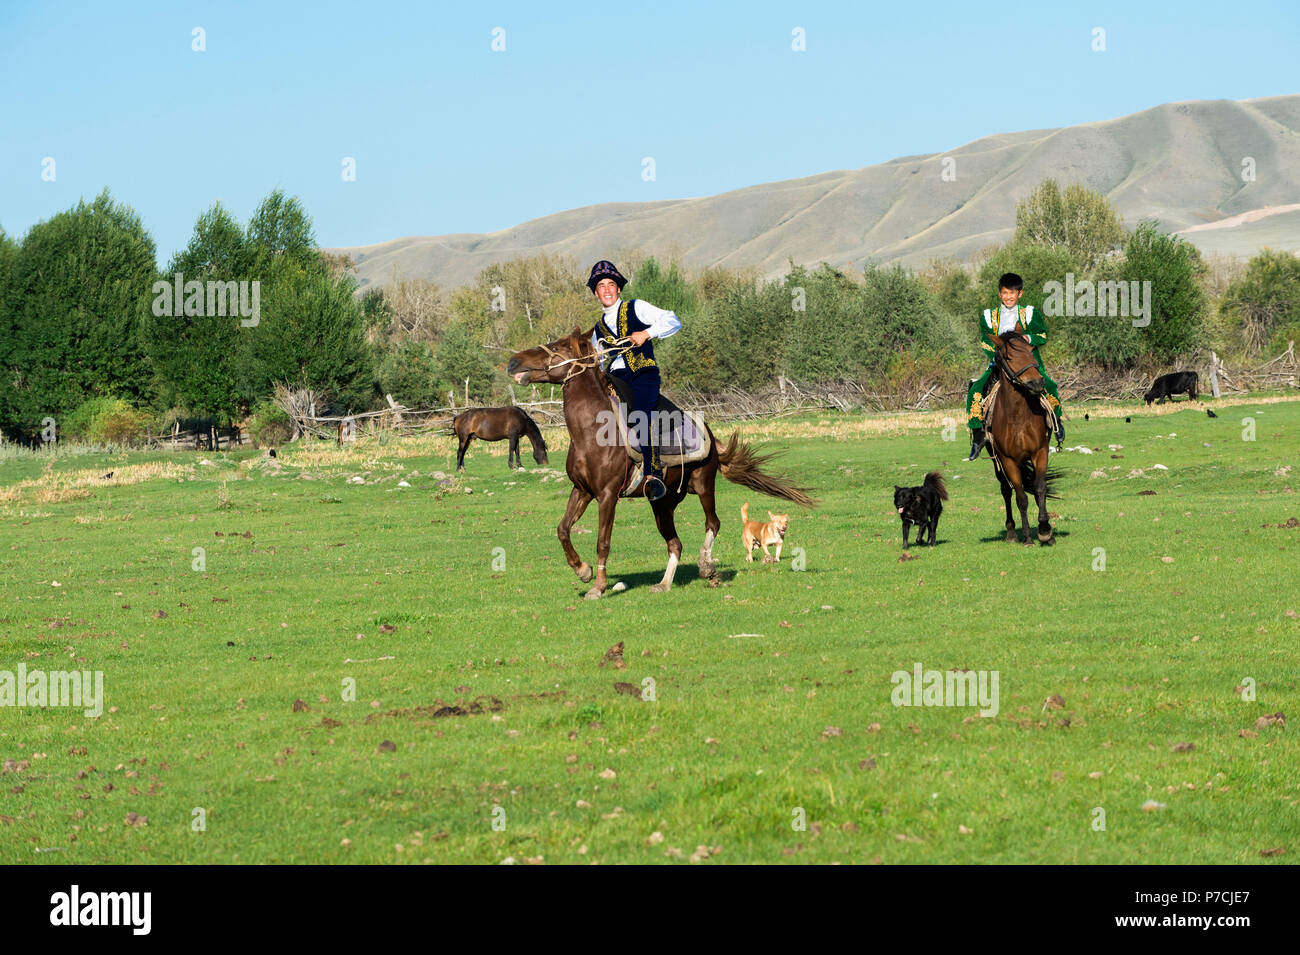 Two Kazakh riders in traditional clothes, Sati village, Tien Shan Mountains, Kazakhstan - Stock Image